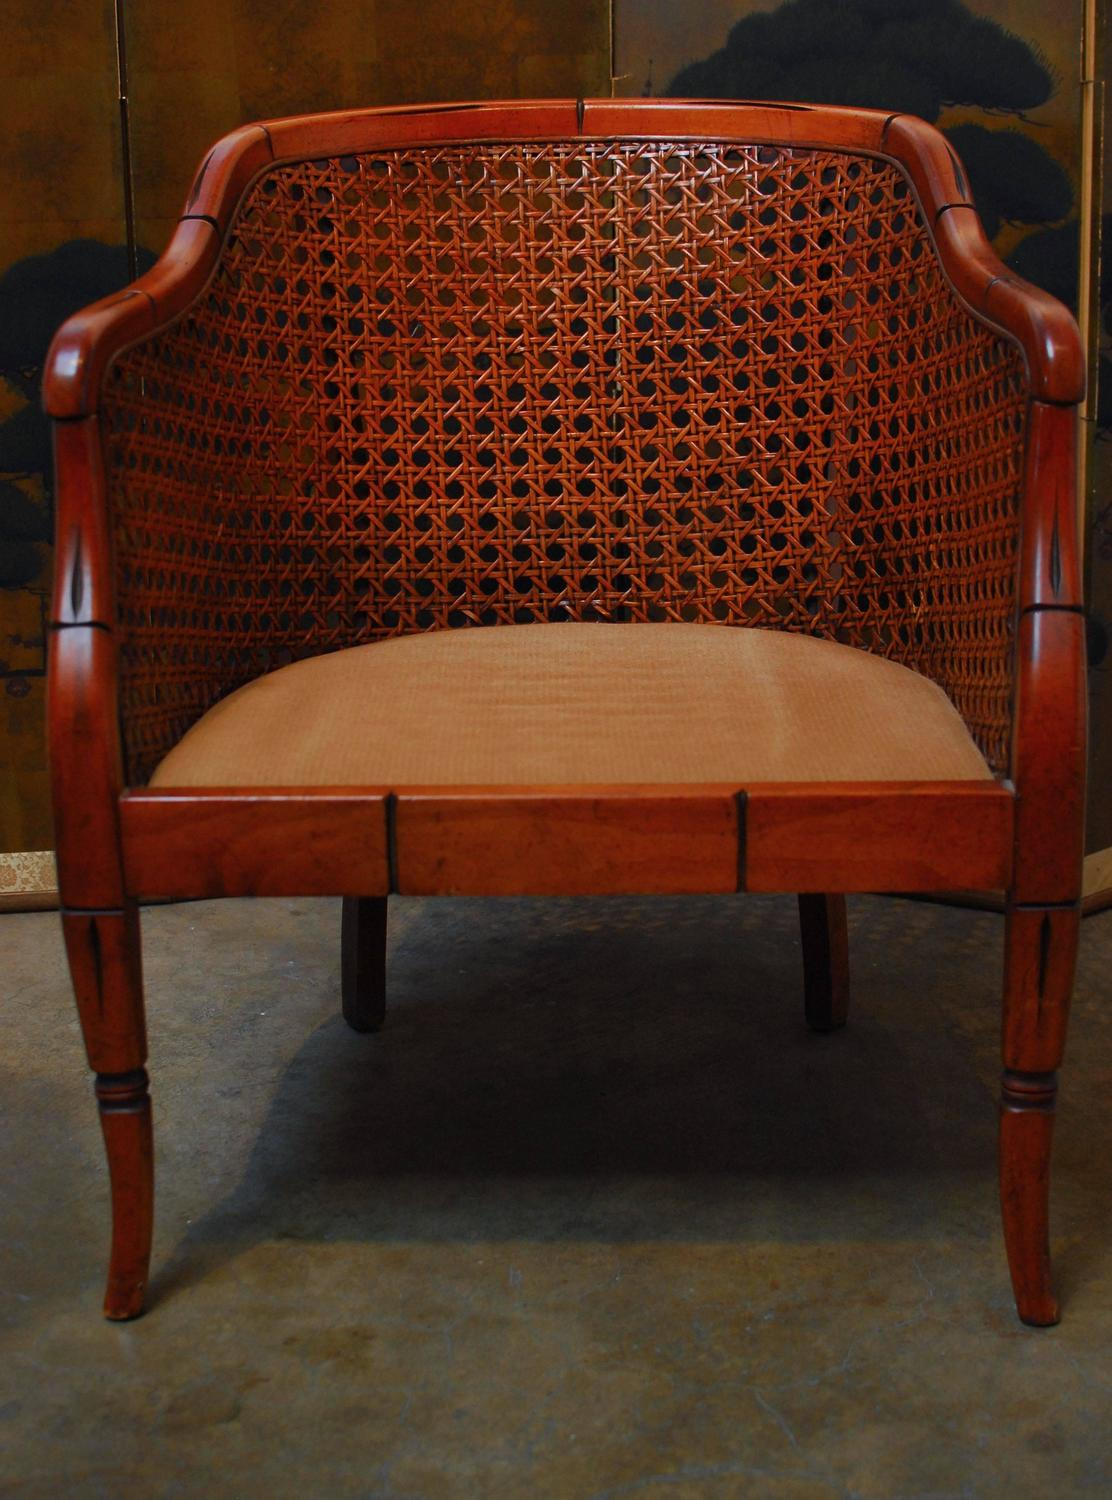 Midcentury Bamboo Cane Barrel Chair For Sale At 1stdibs